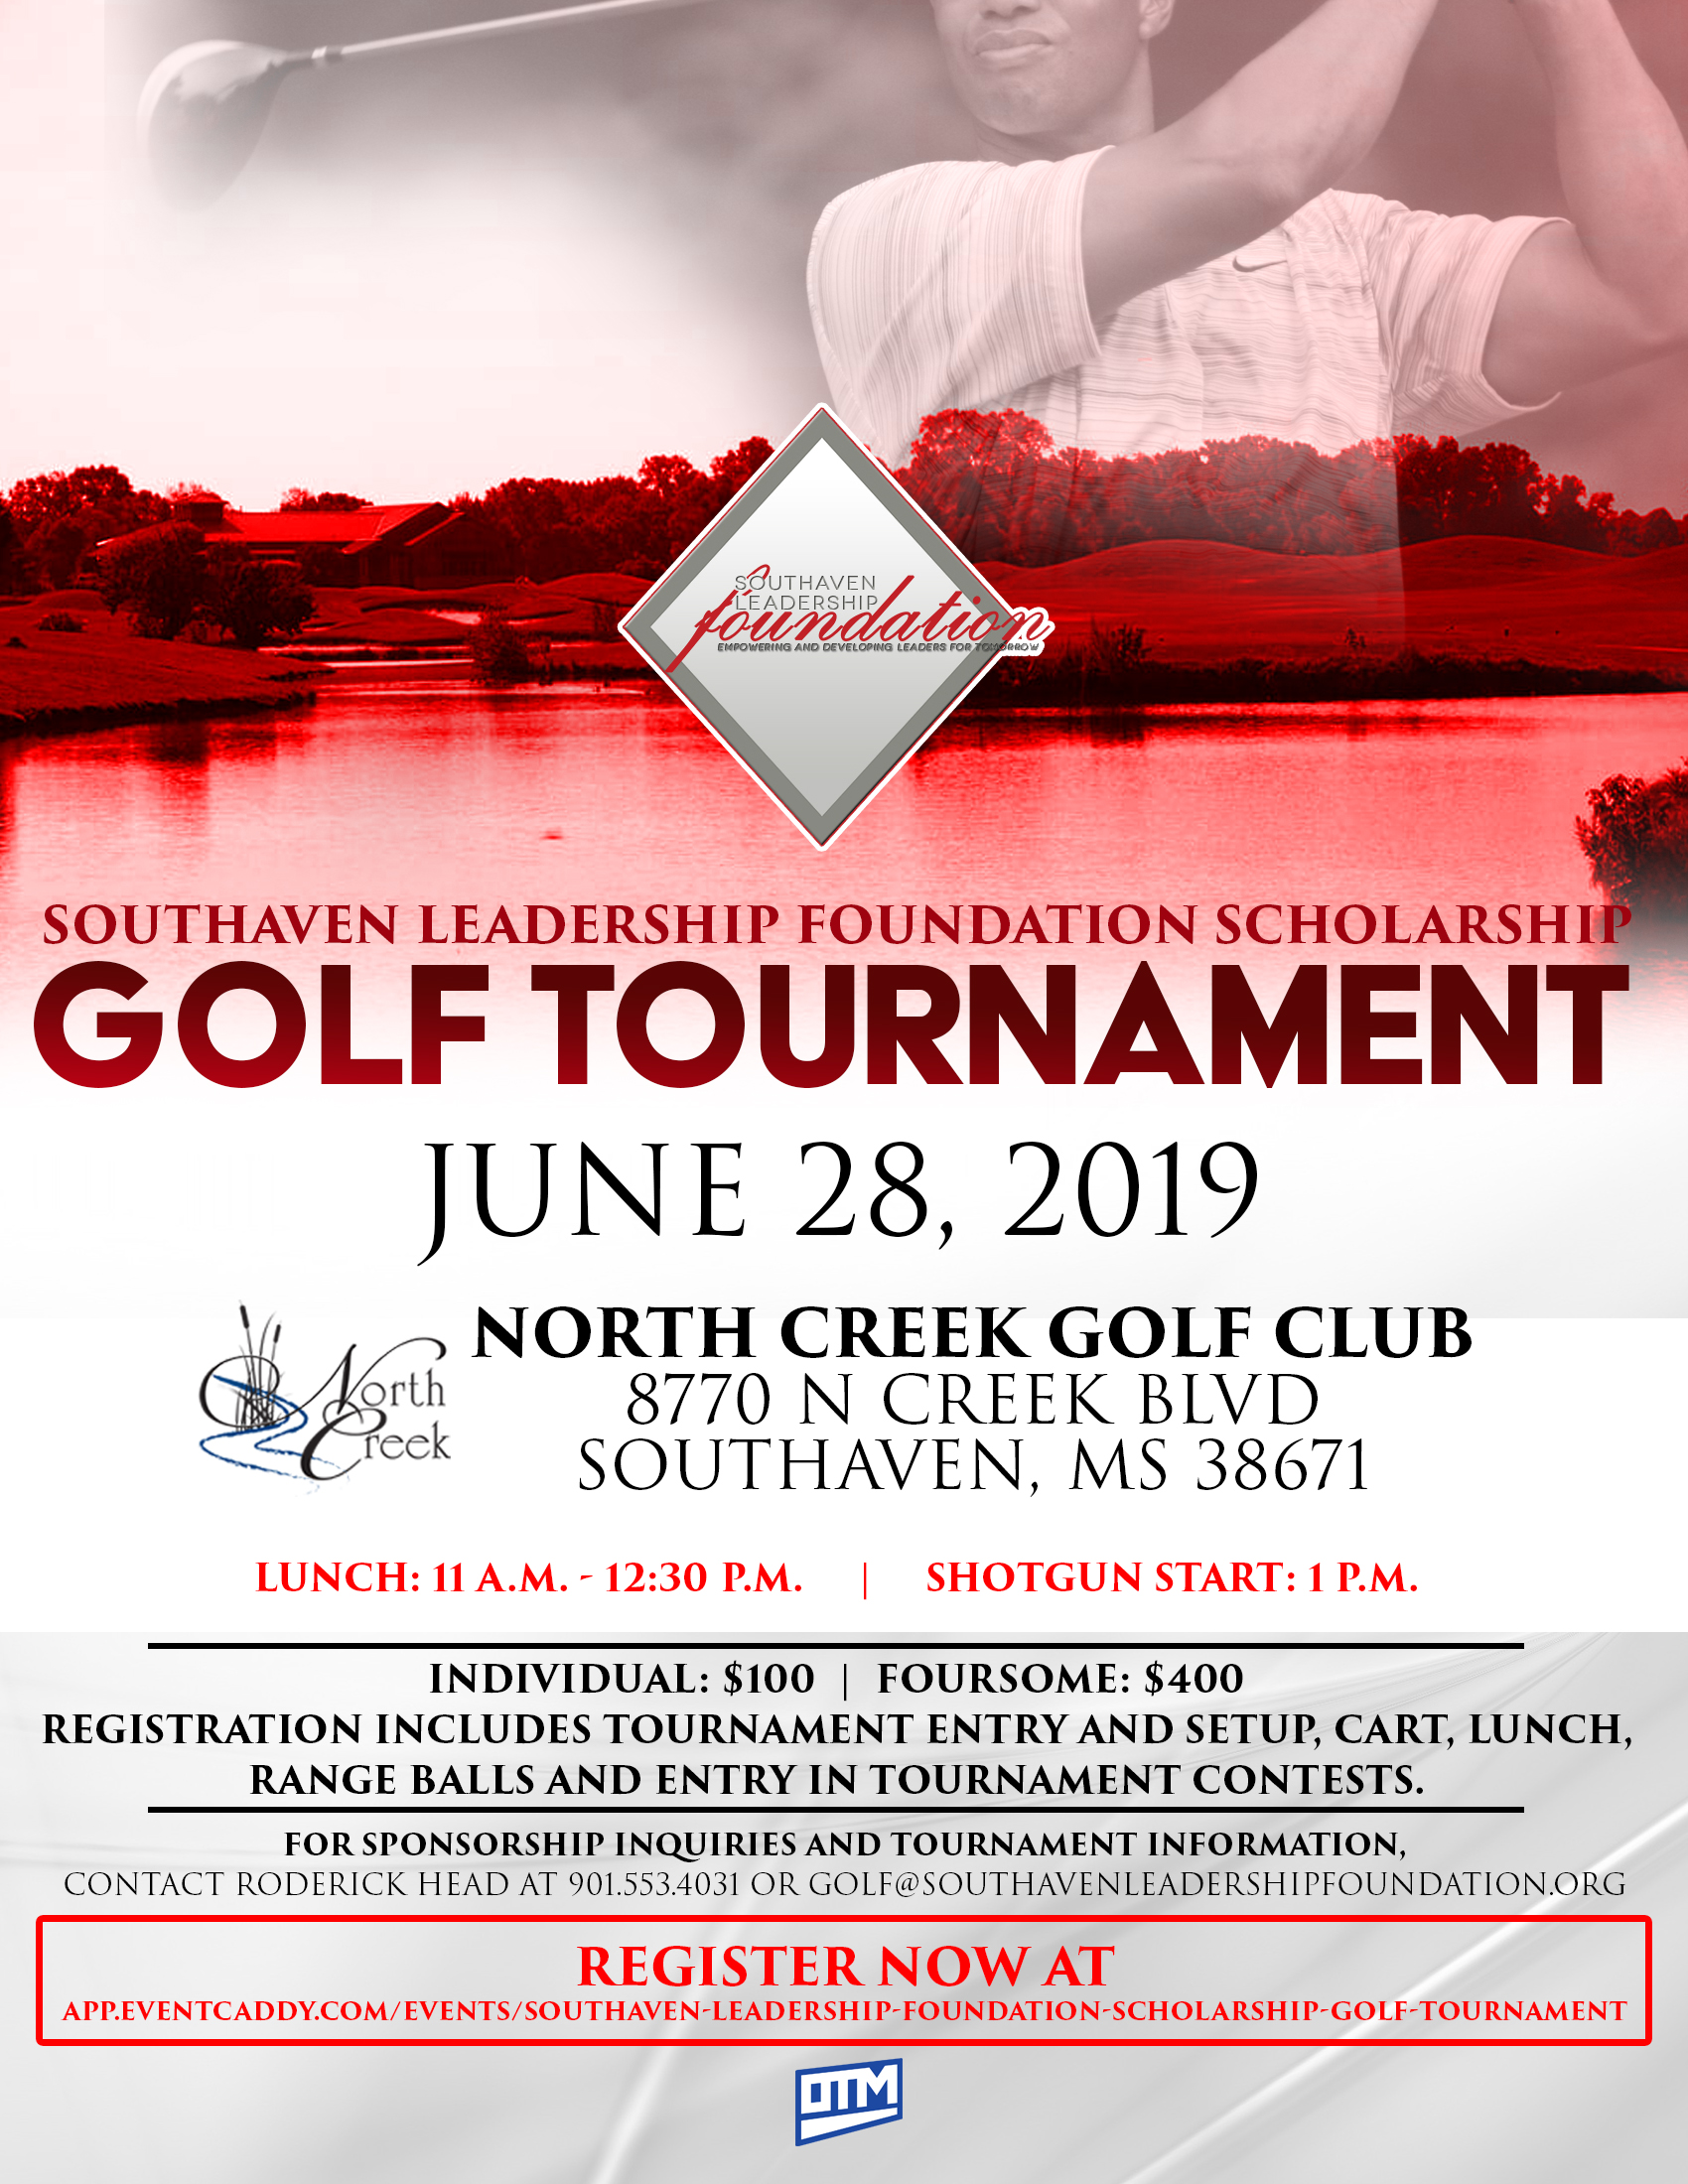 Southaven Leadership Foundation Scholarship Golf Tournament logo